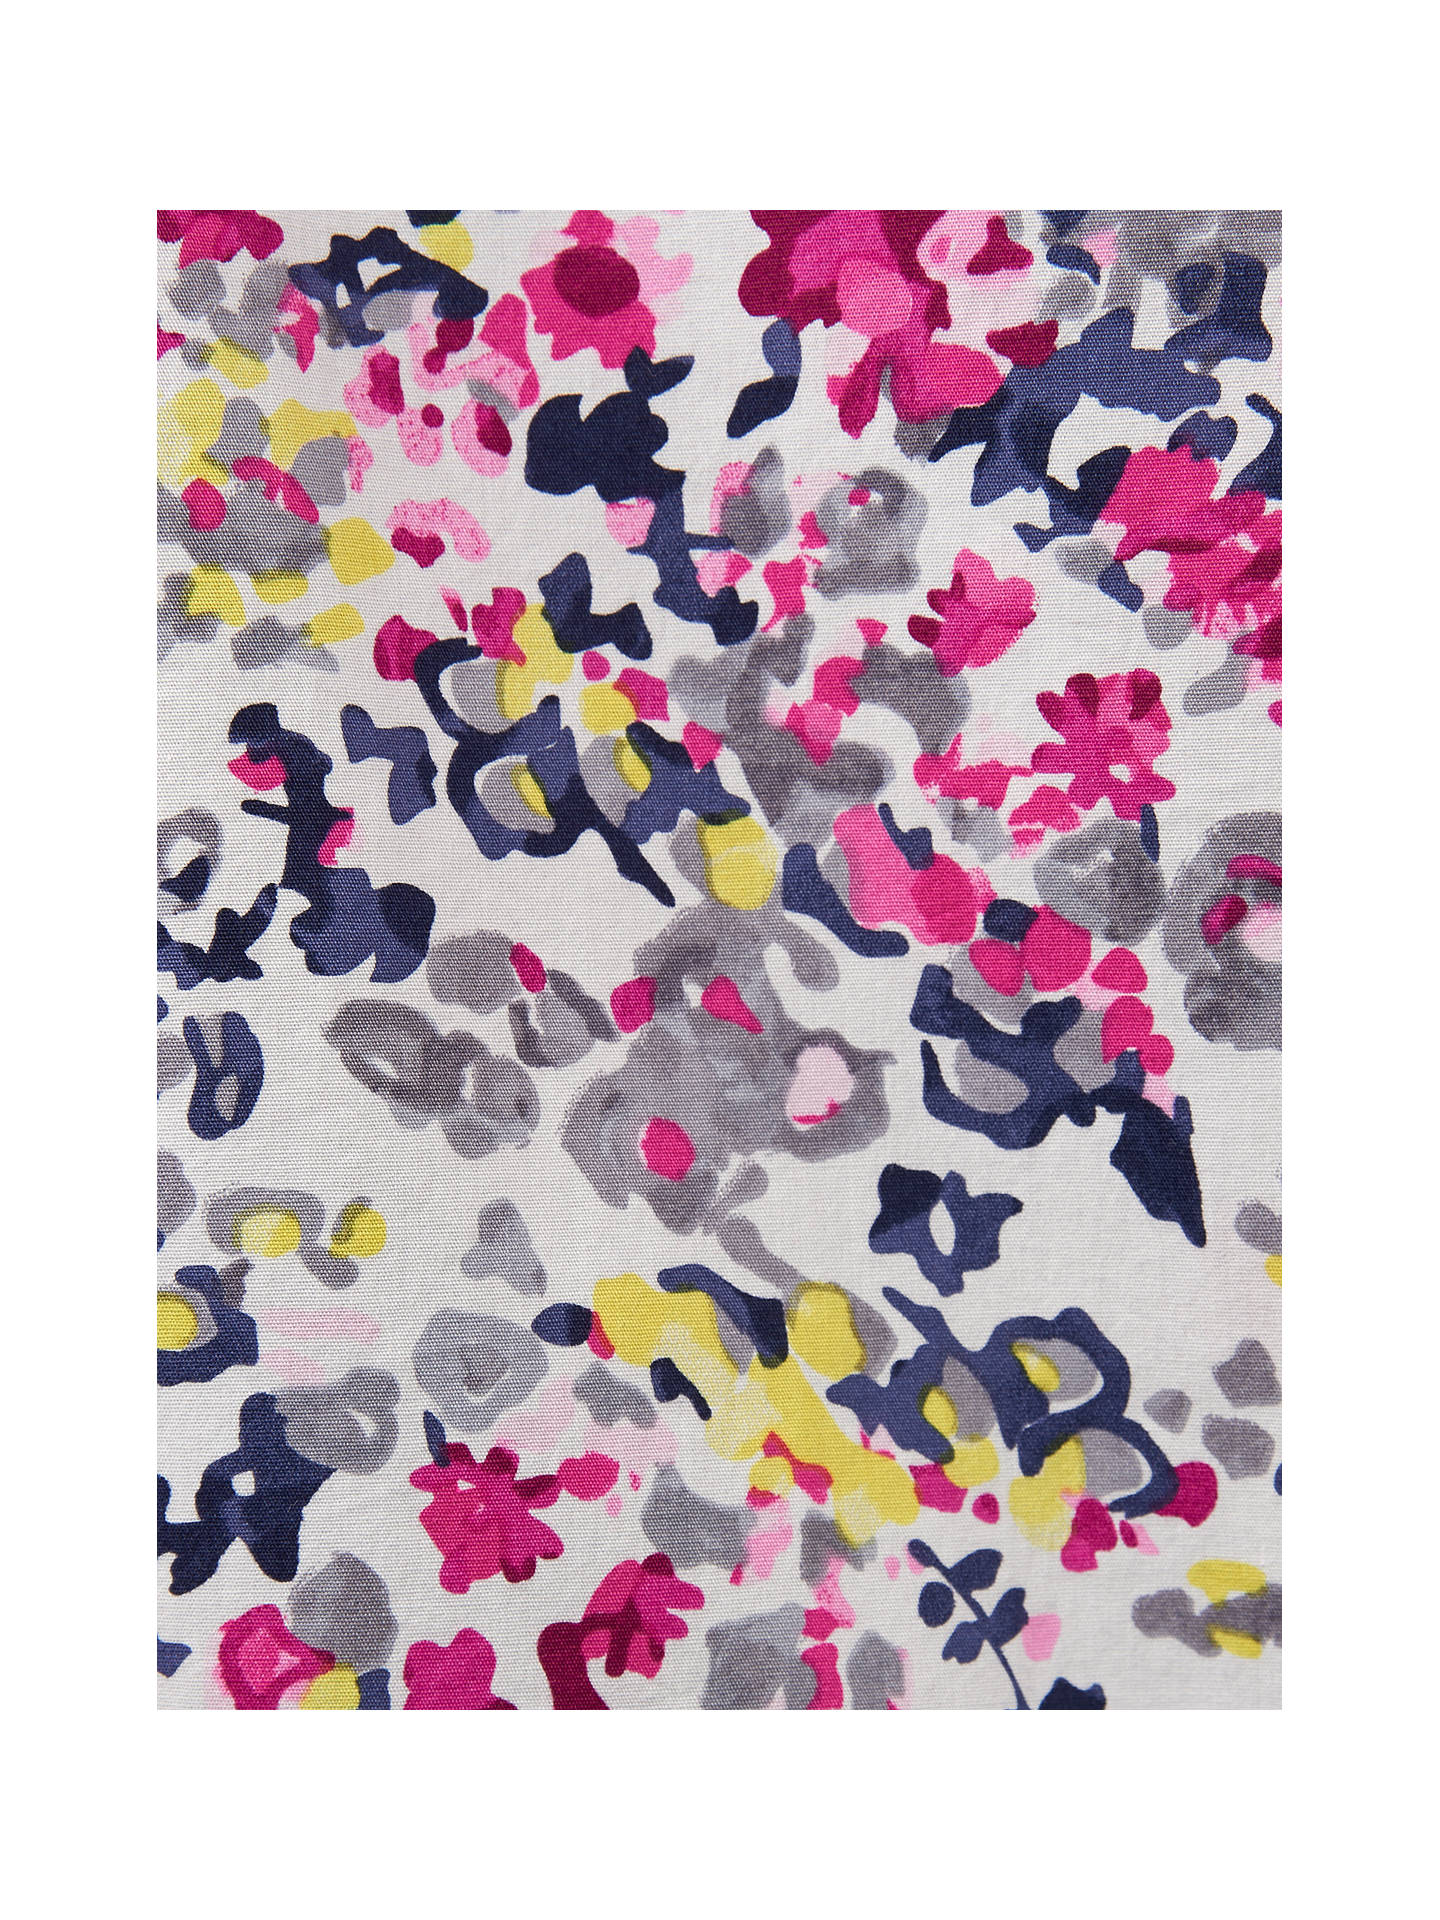 Floral John Ditsy Cream Scatter Joules At Shirt Lewis Lucie Print xfFwp1